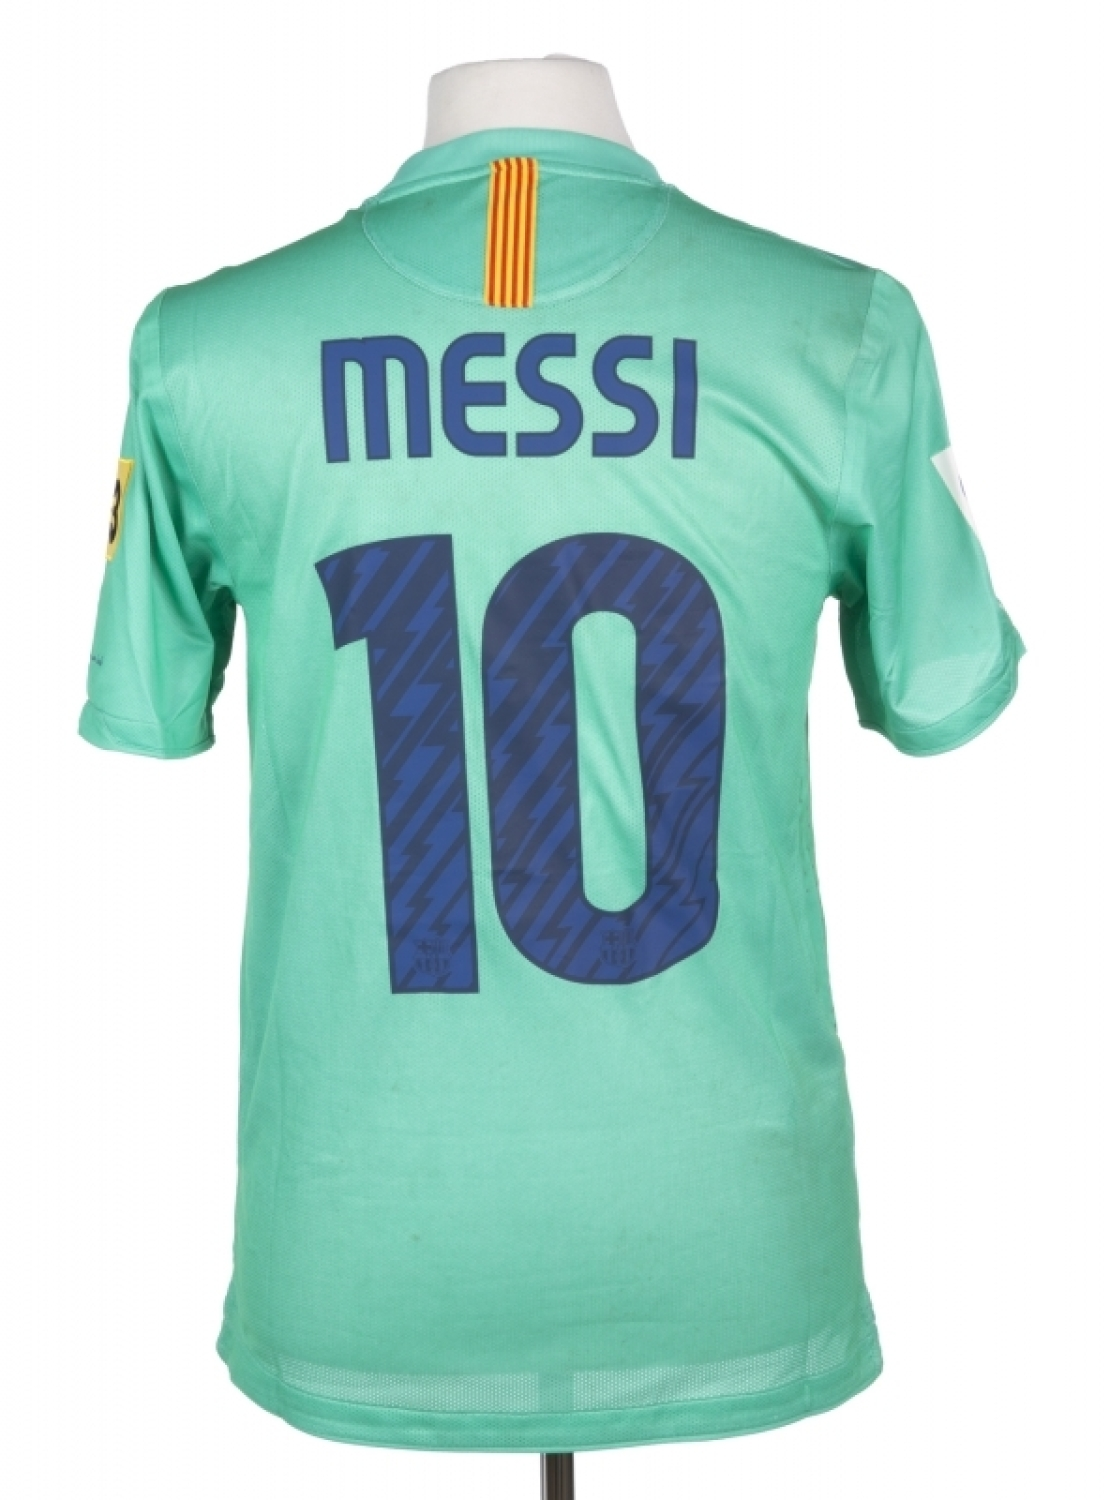 345277304bc LIONEL MESSI MATCH WORN 2010-2011 FC BARCELONA JERSEY Please Wait... Click  image to enlarge